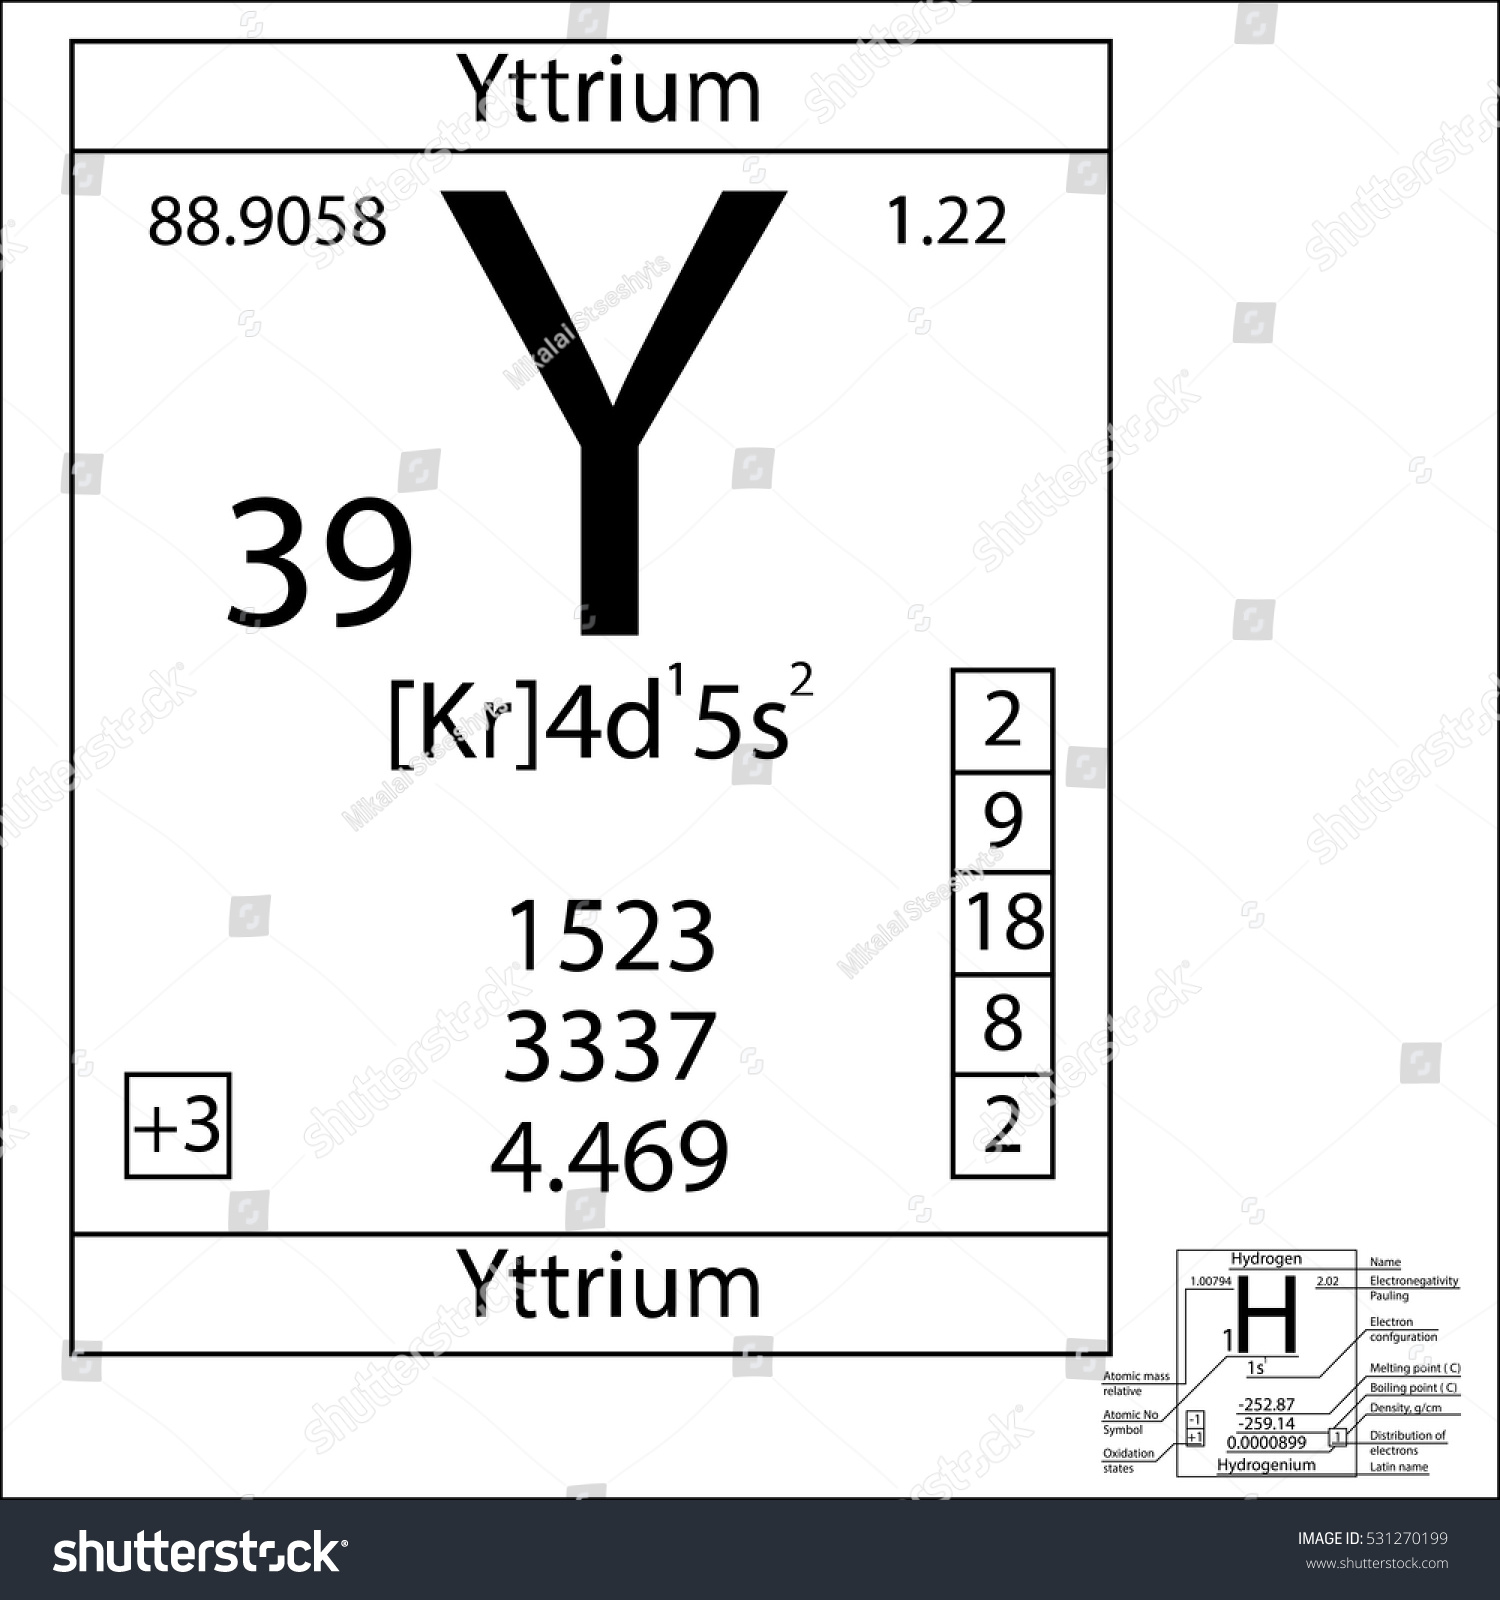 Yttrium on the periodic table image collections periodic table periodic table element yttrium basic properties stock vector the periodic table element yttrium with the basic gamestrikefo Choice Image